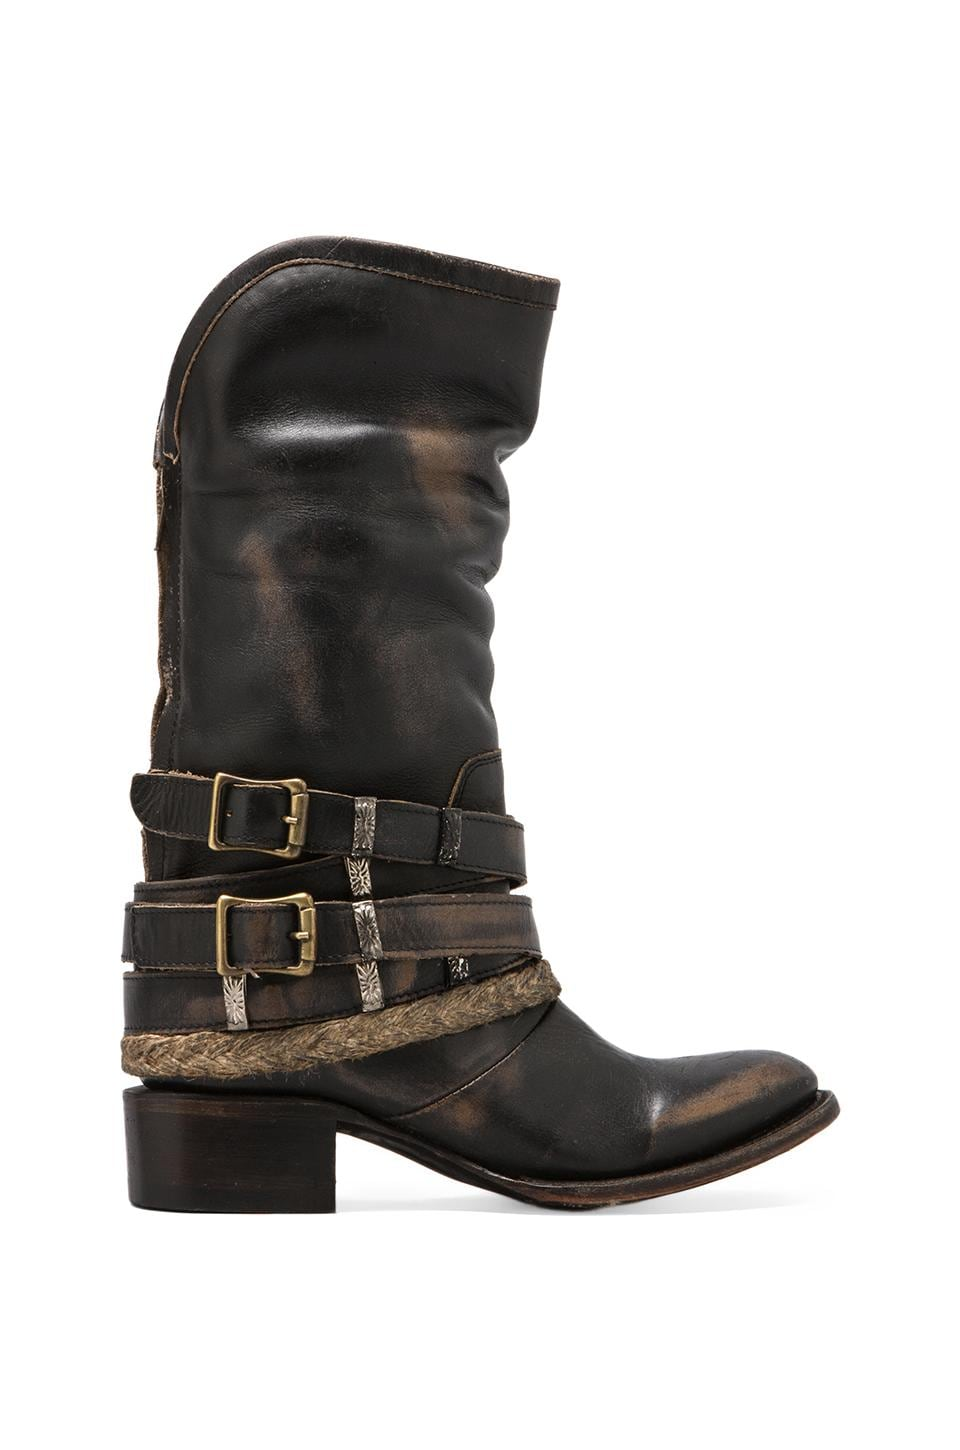 Steven Drover Boot in Black